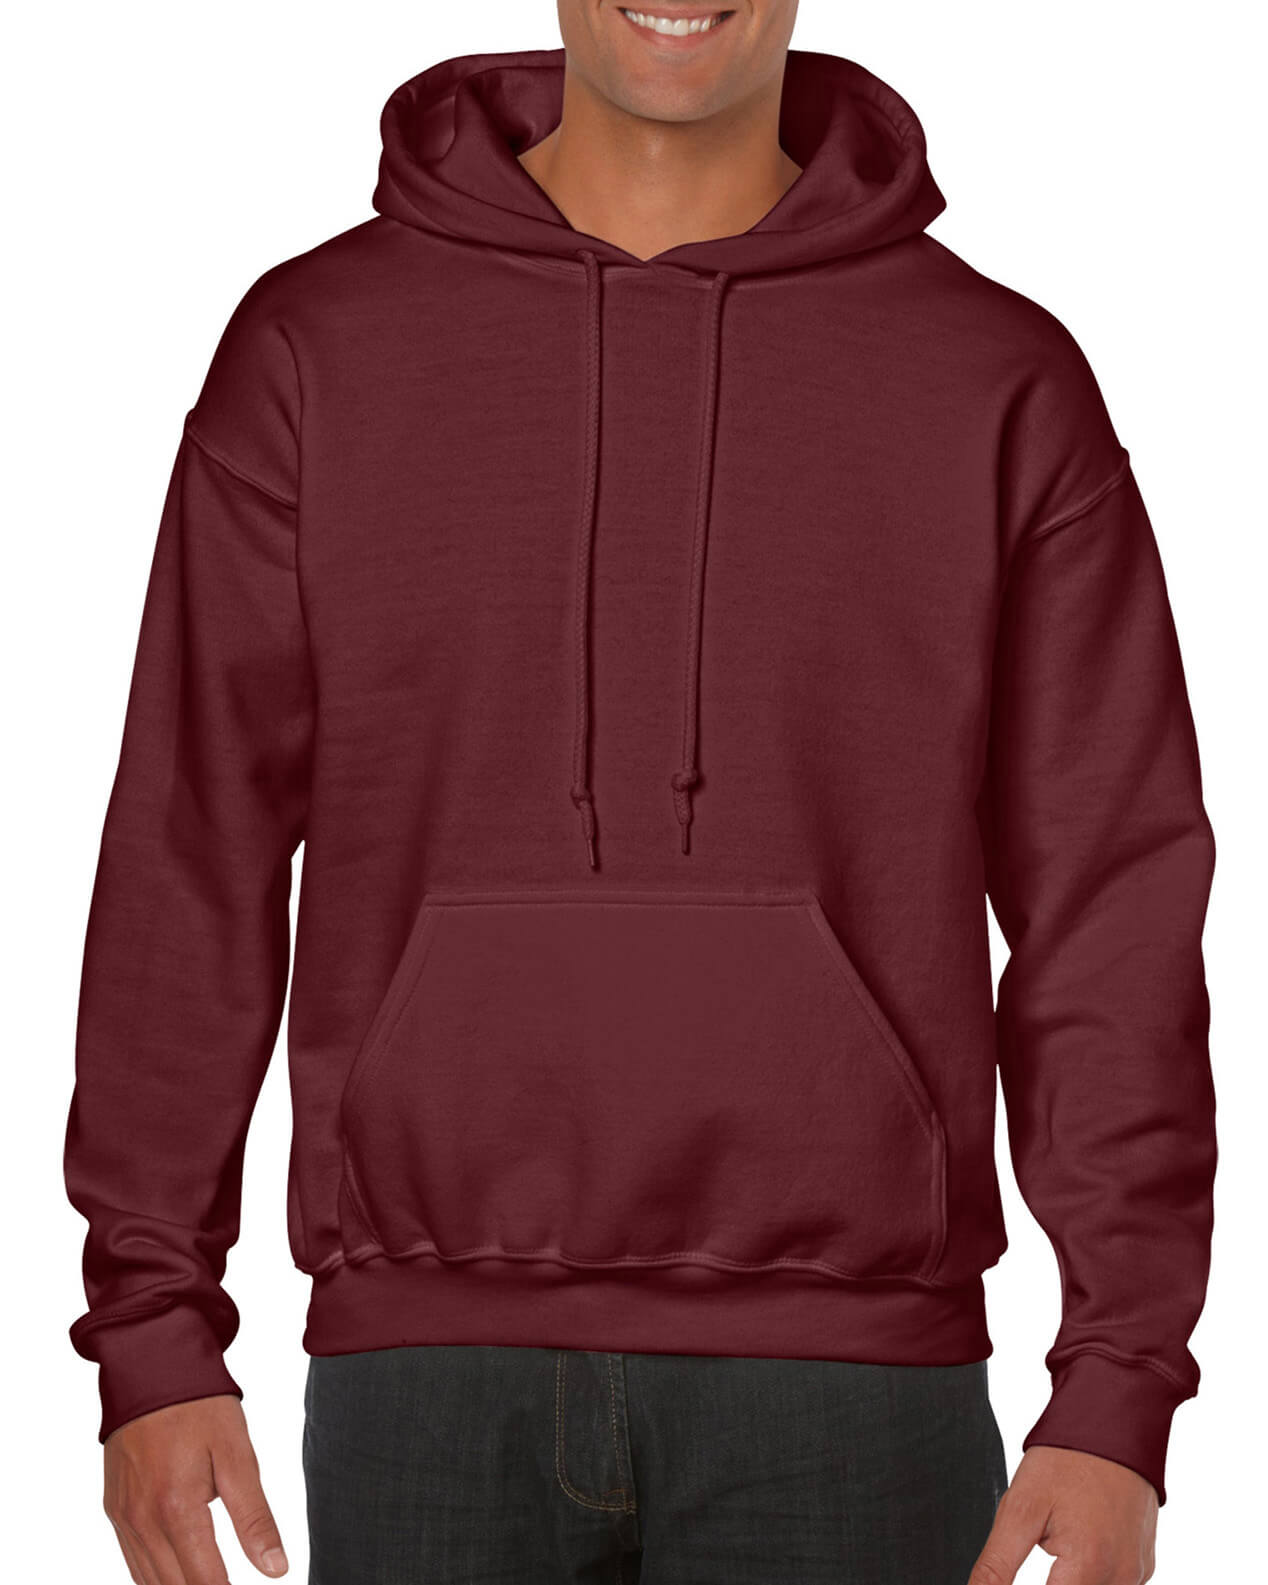 ADULT 50/50 HOODED SWEAT-Maroon